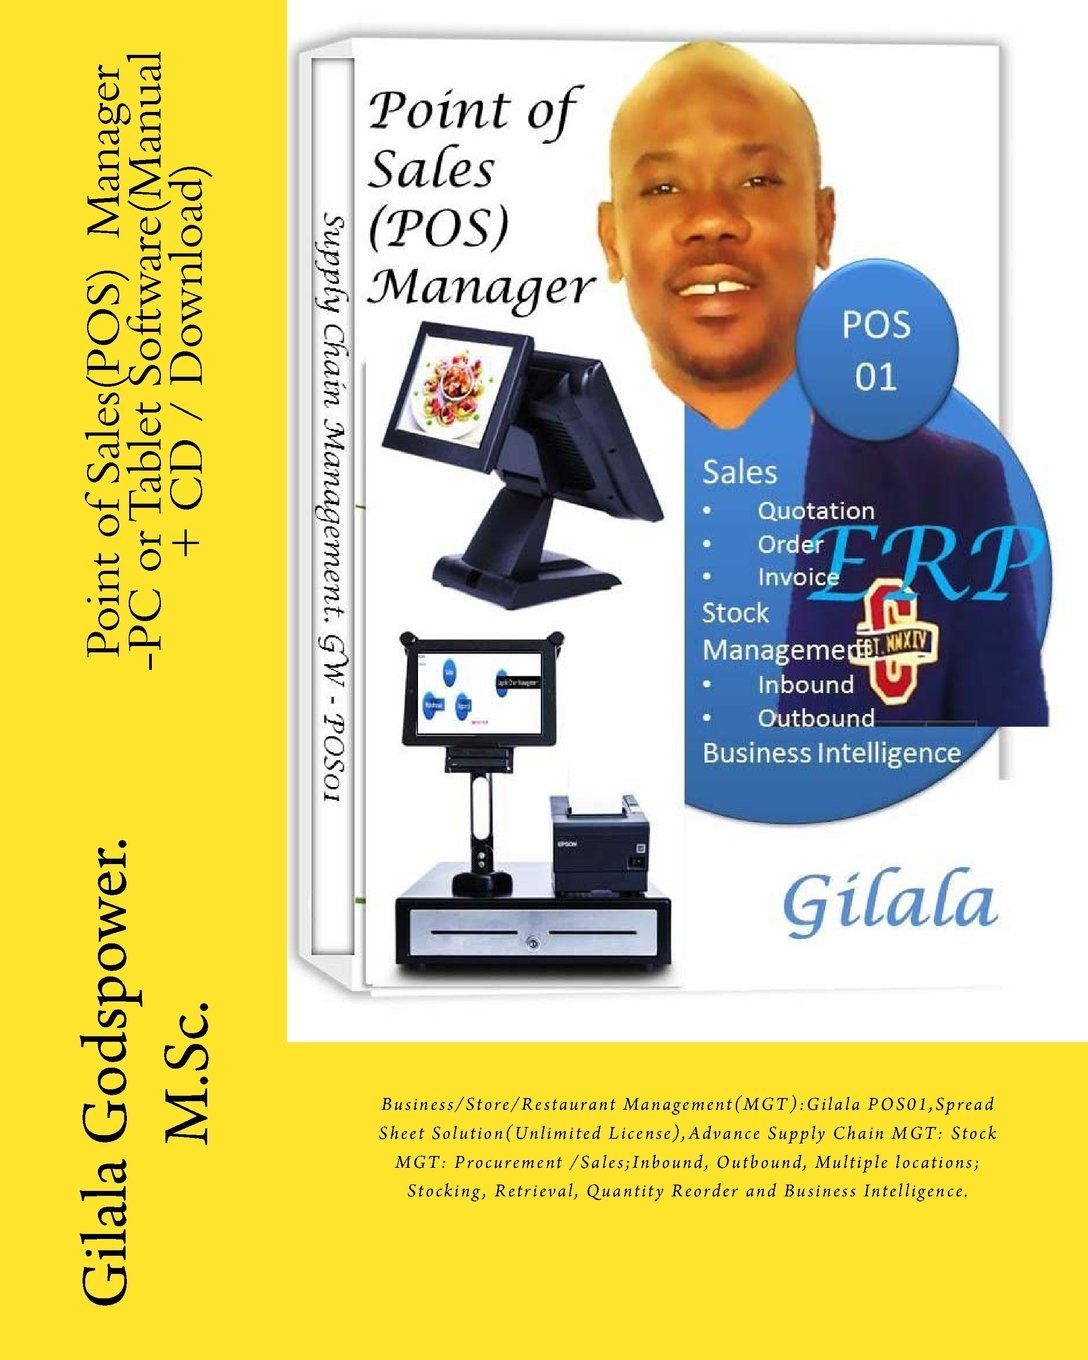 Read Online Point of Sales(POS) Manager -PC or Tablet Software(Manual + CD/Download): Business/Store/Restaurant Management(MGT):Gilala POS01,Spread Sheet Reorder and Business Intelligence. (Volume 1) ebook